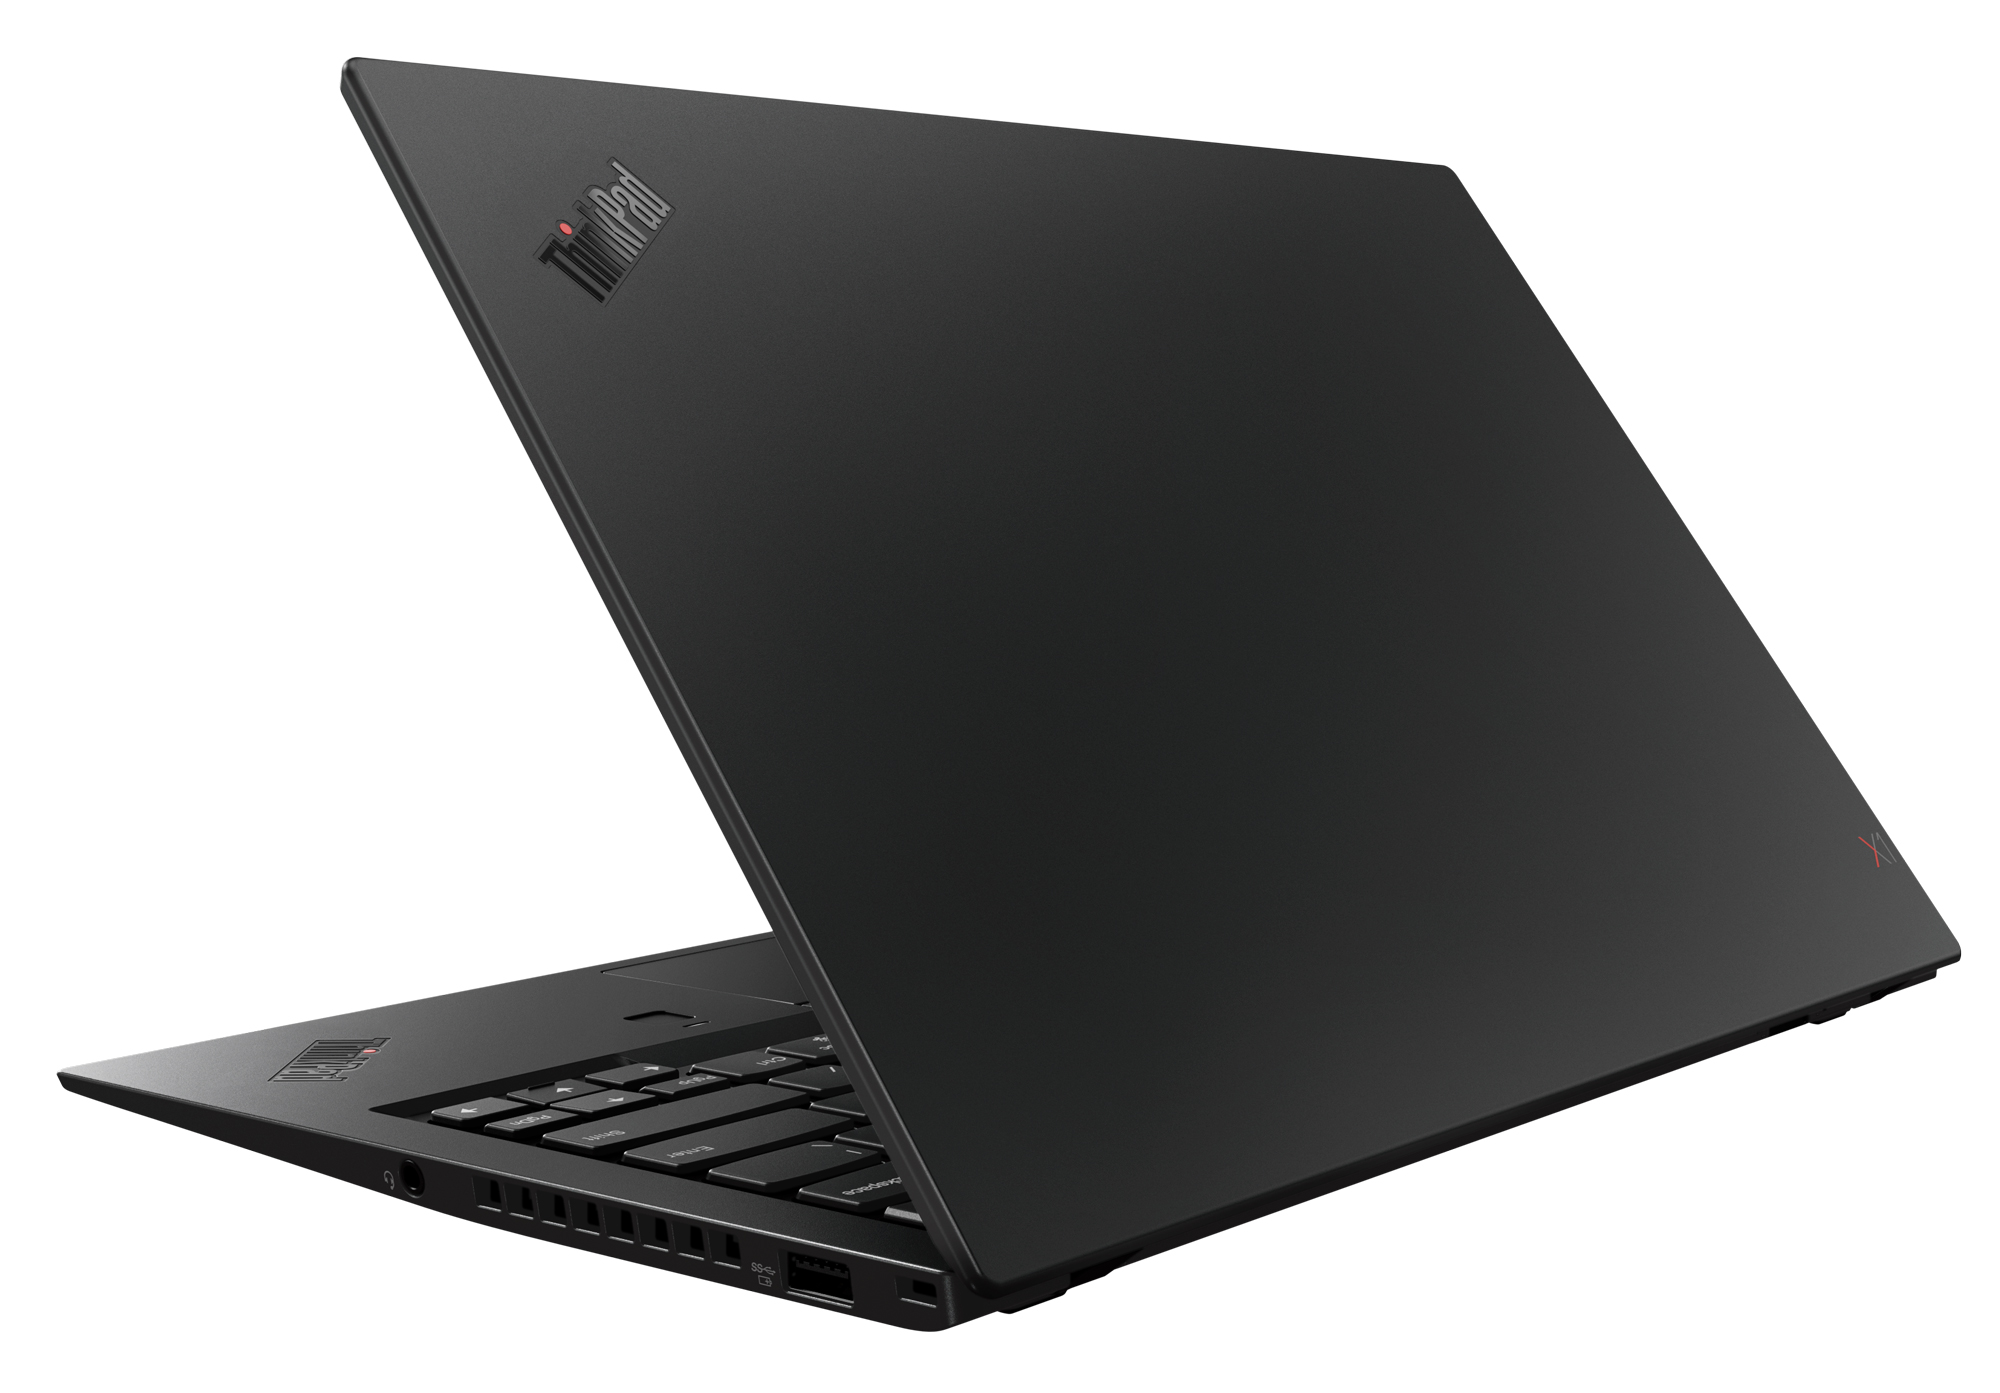 Фото  Ультрабук ThinkPad X1 Carbon 6th Gen (20KG004HRT)